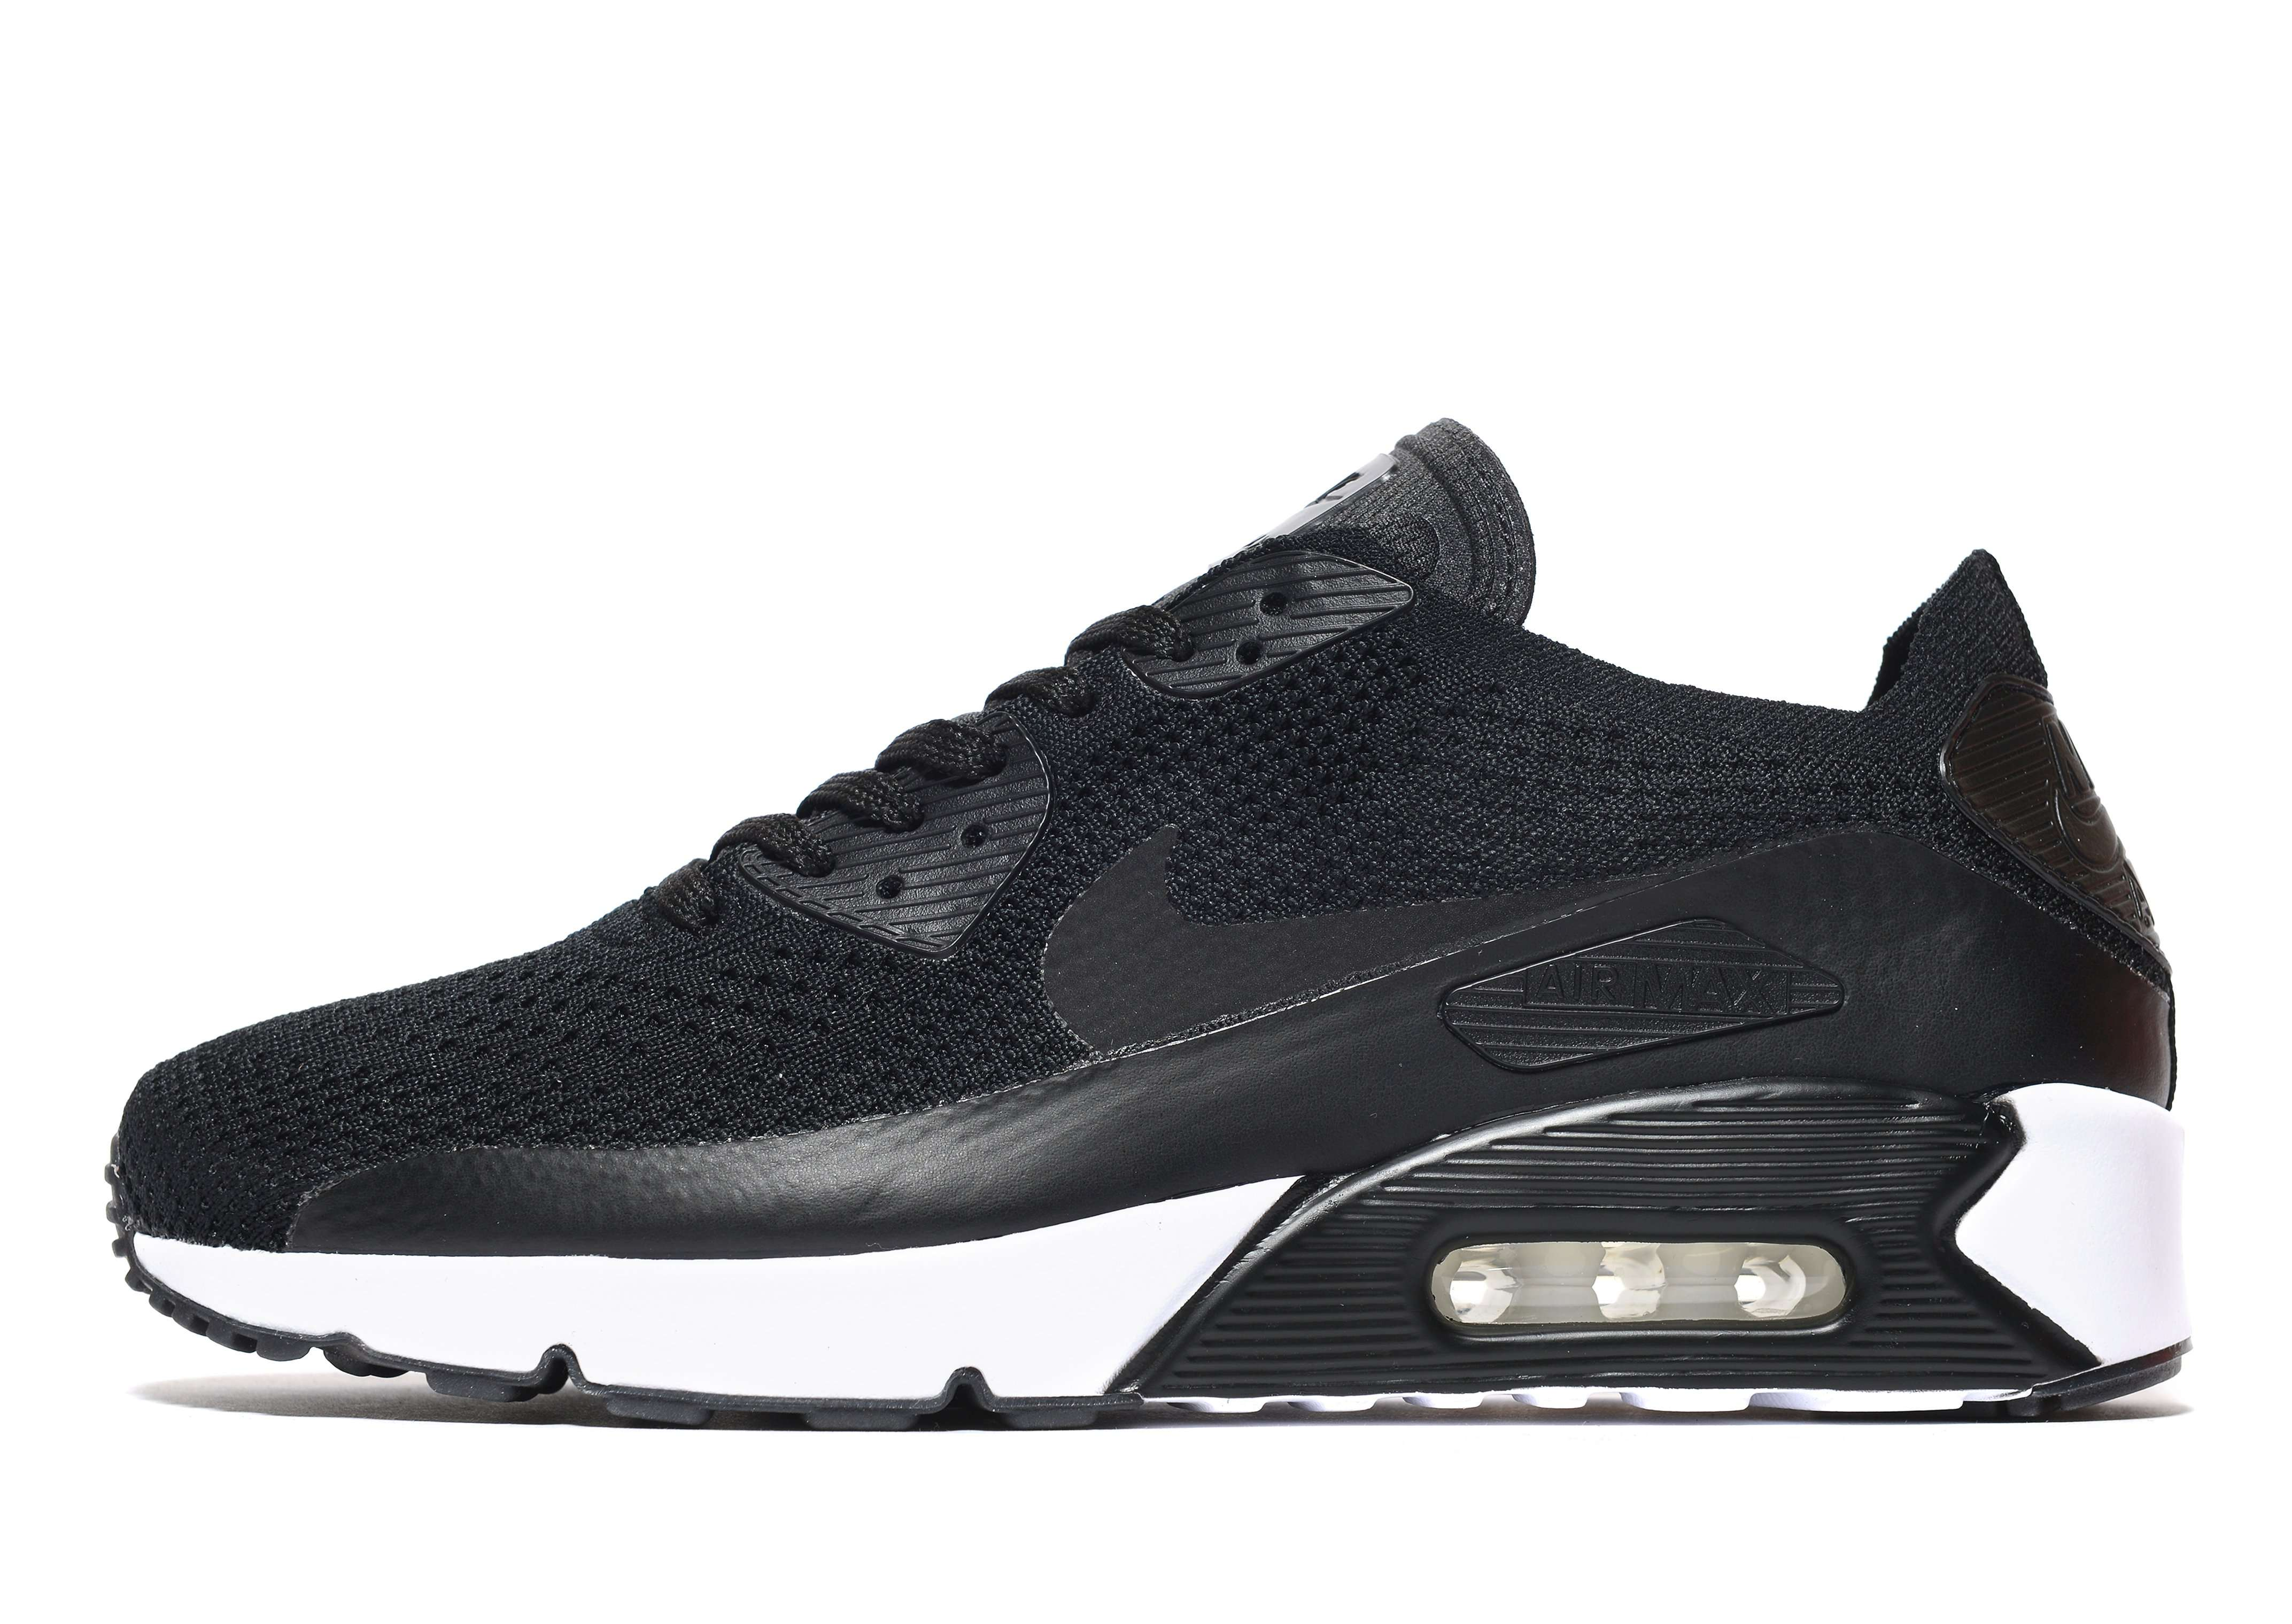 air max blanche homme,nouvelle air max homme air max 90 nike blanche homme  kwitv